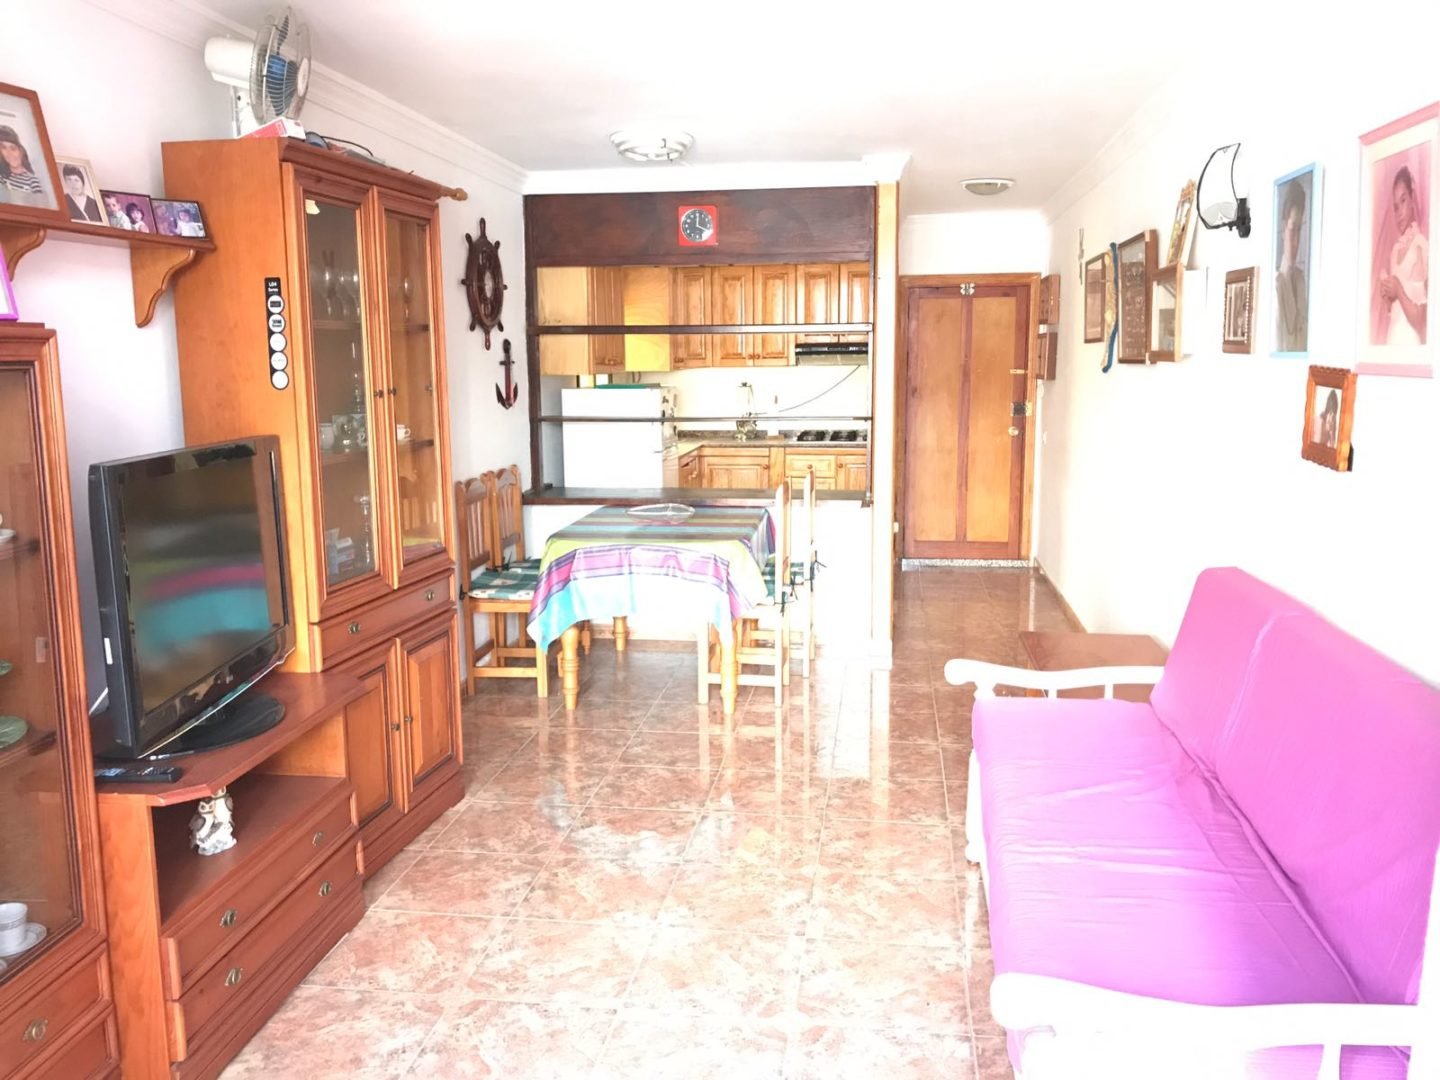 Very Cenctric Apartment with terrace